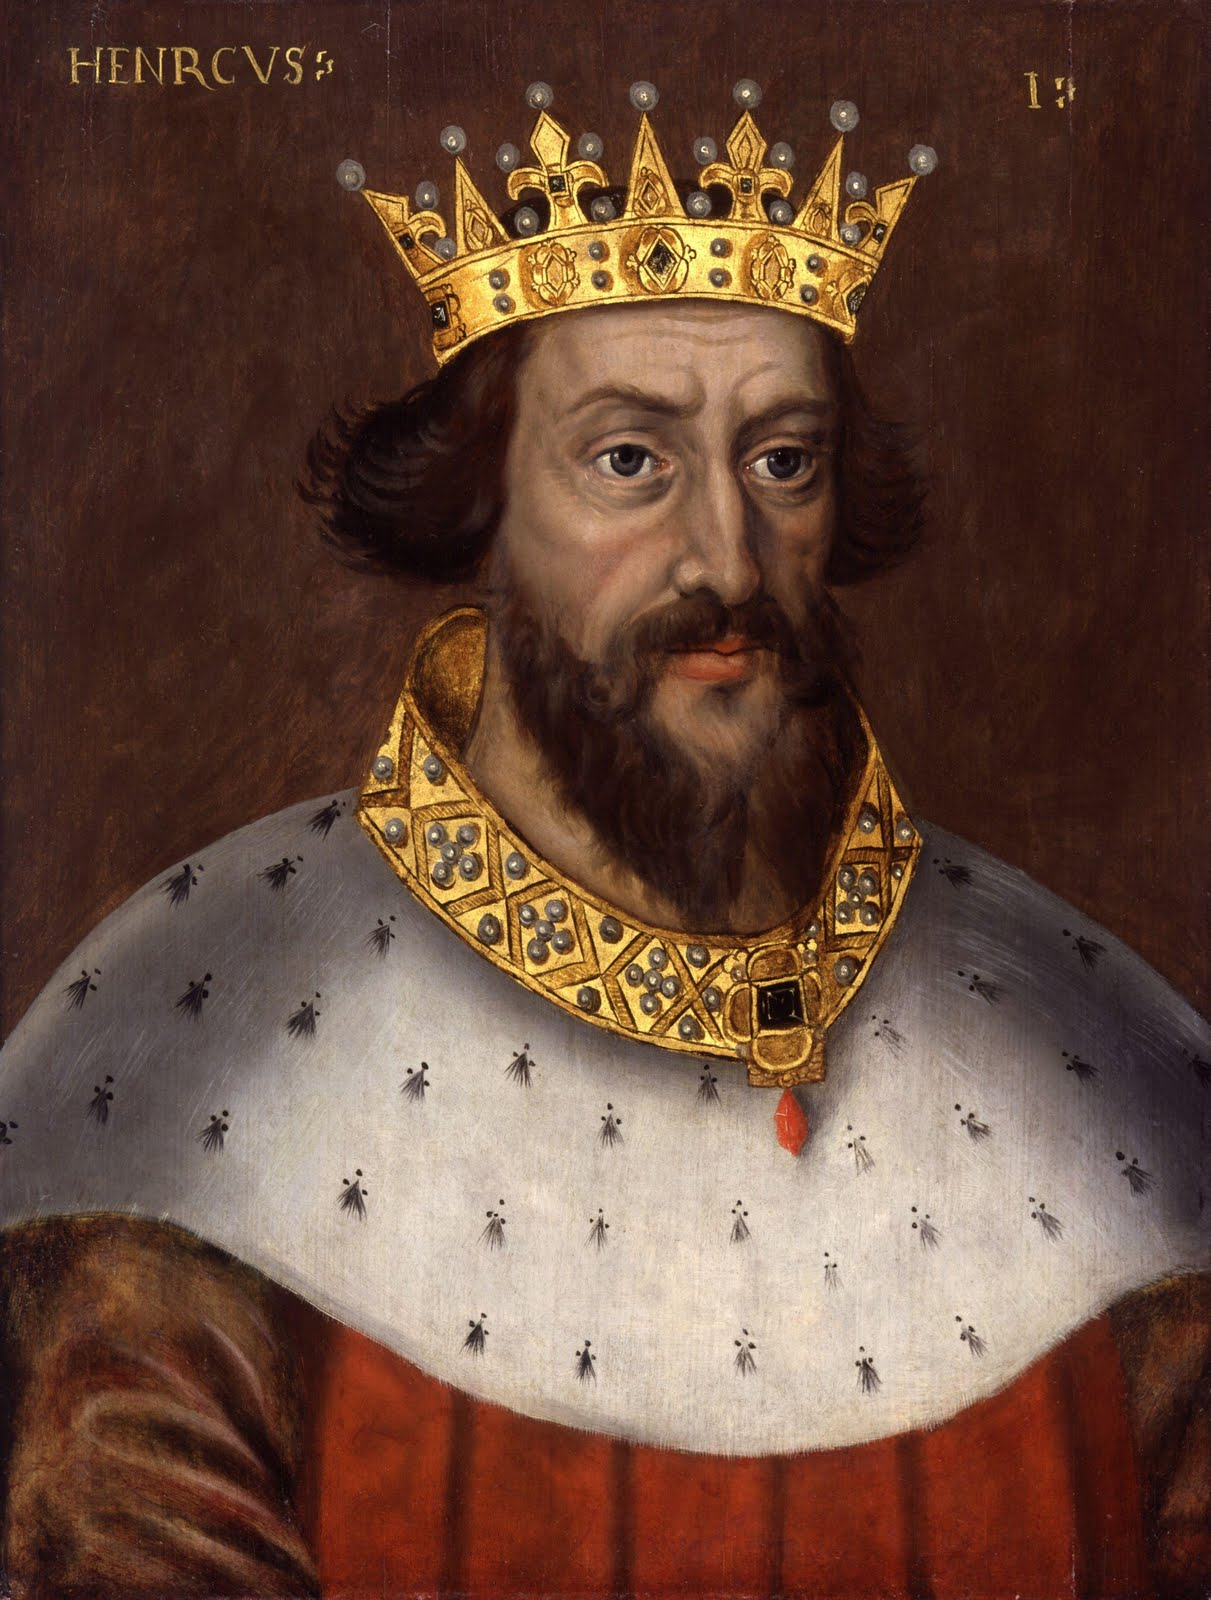 FROM THE PAST WE CAME: THE GREAT KING HENRY I